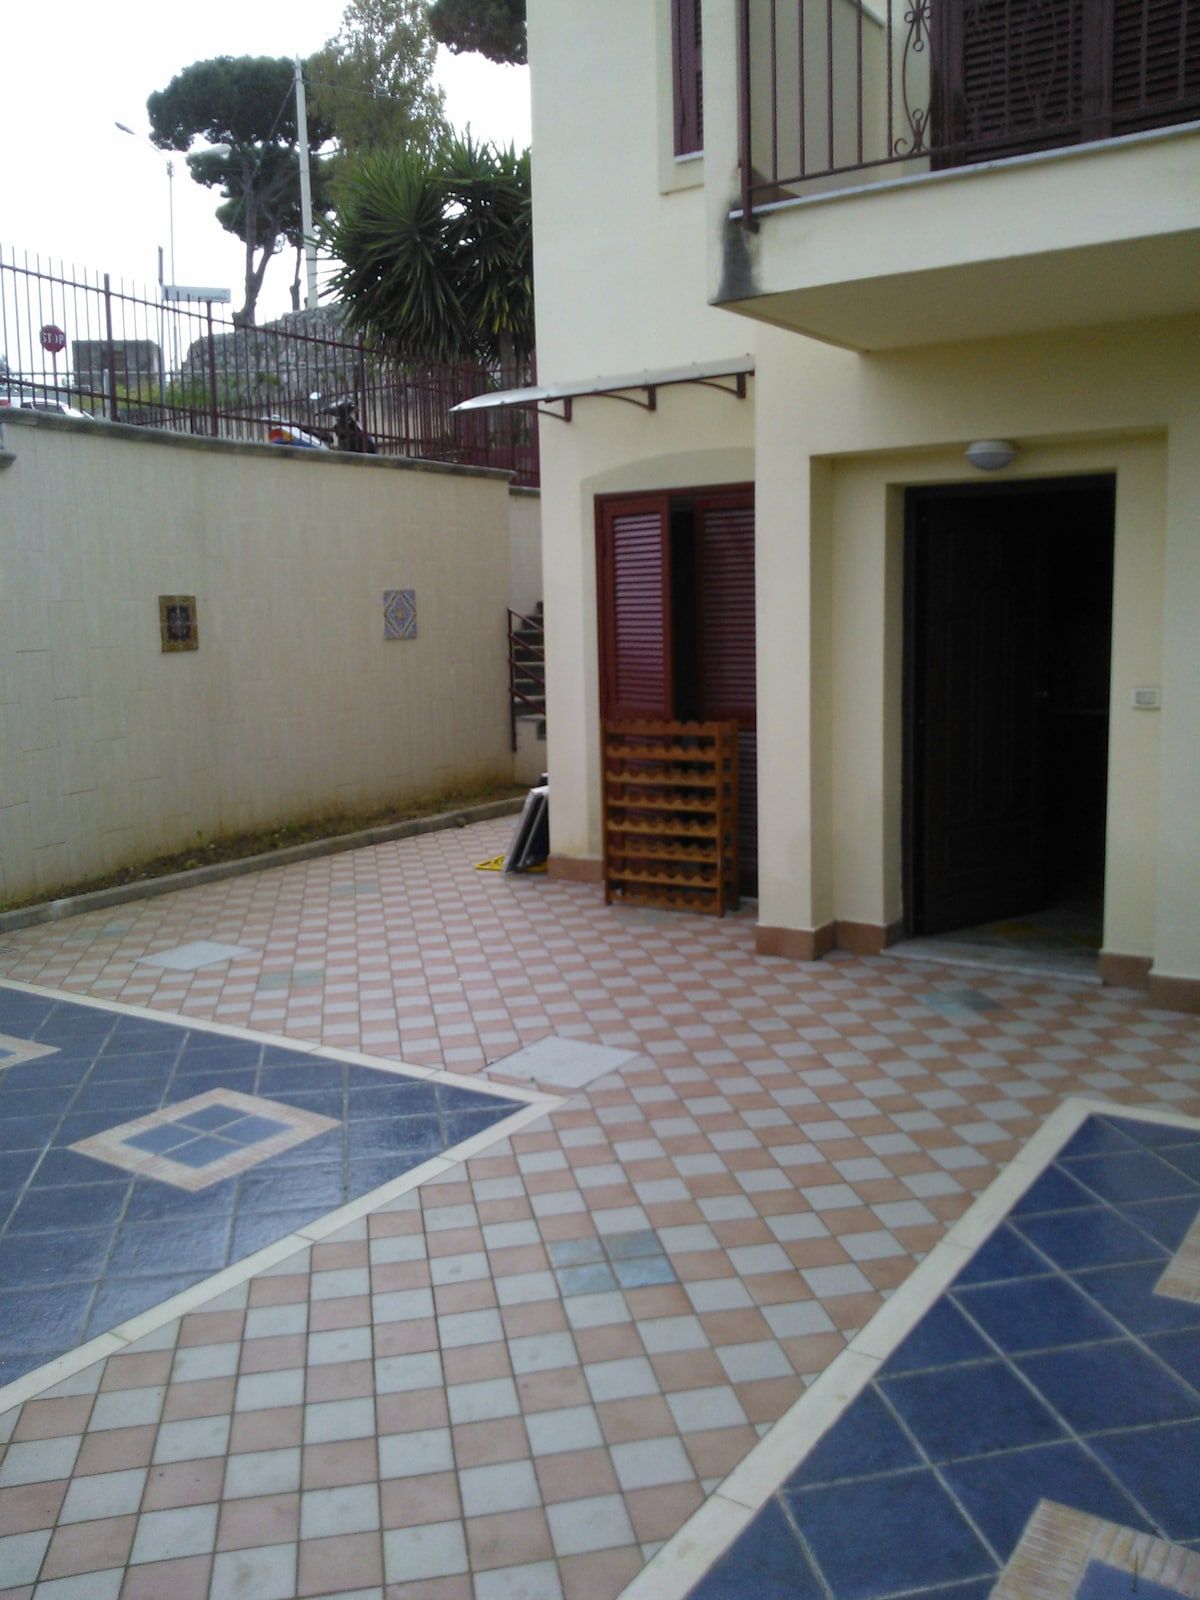 Big patio, main entrance